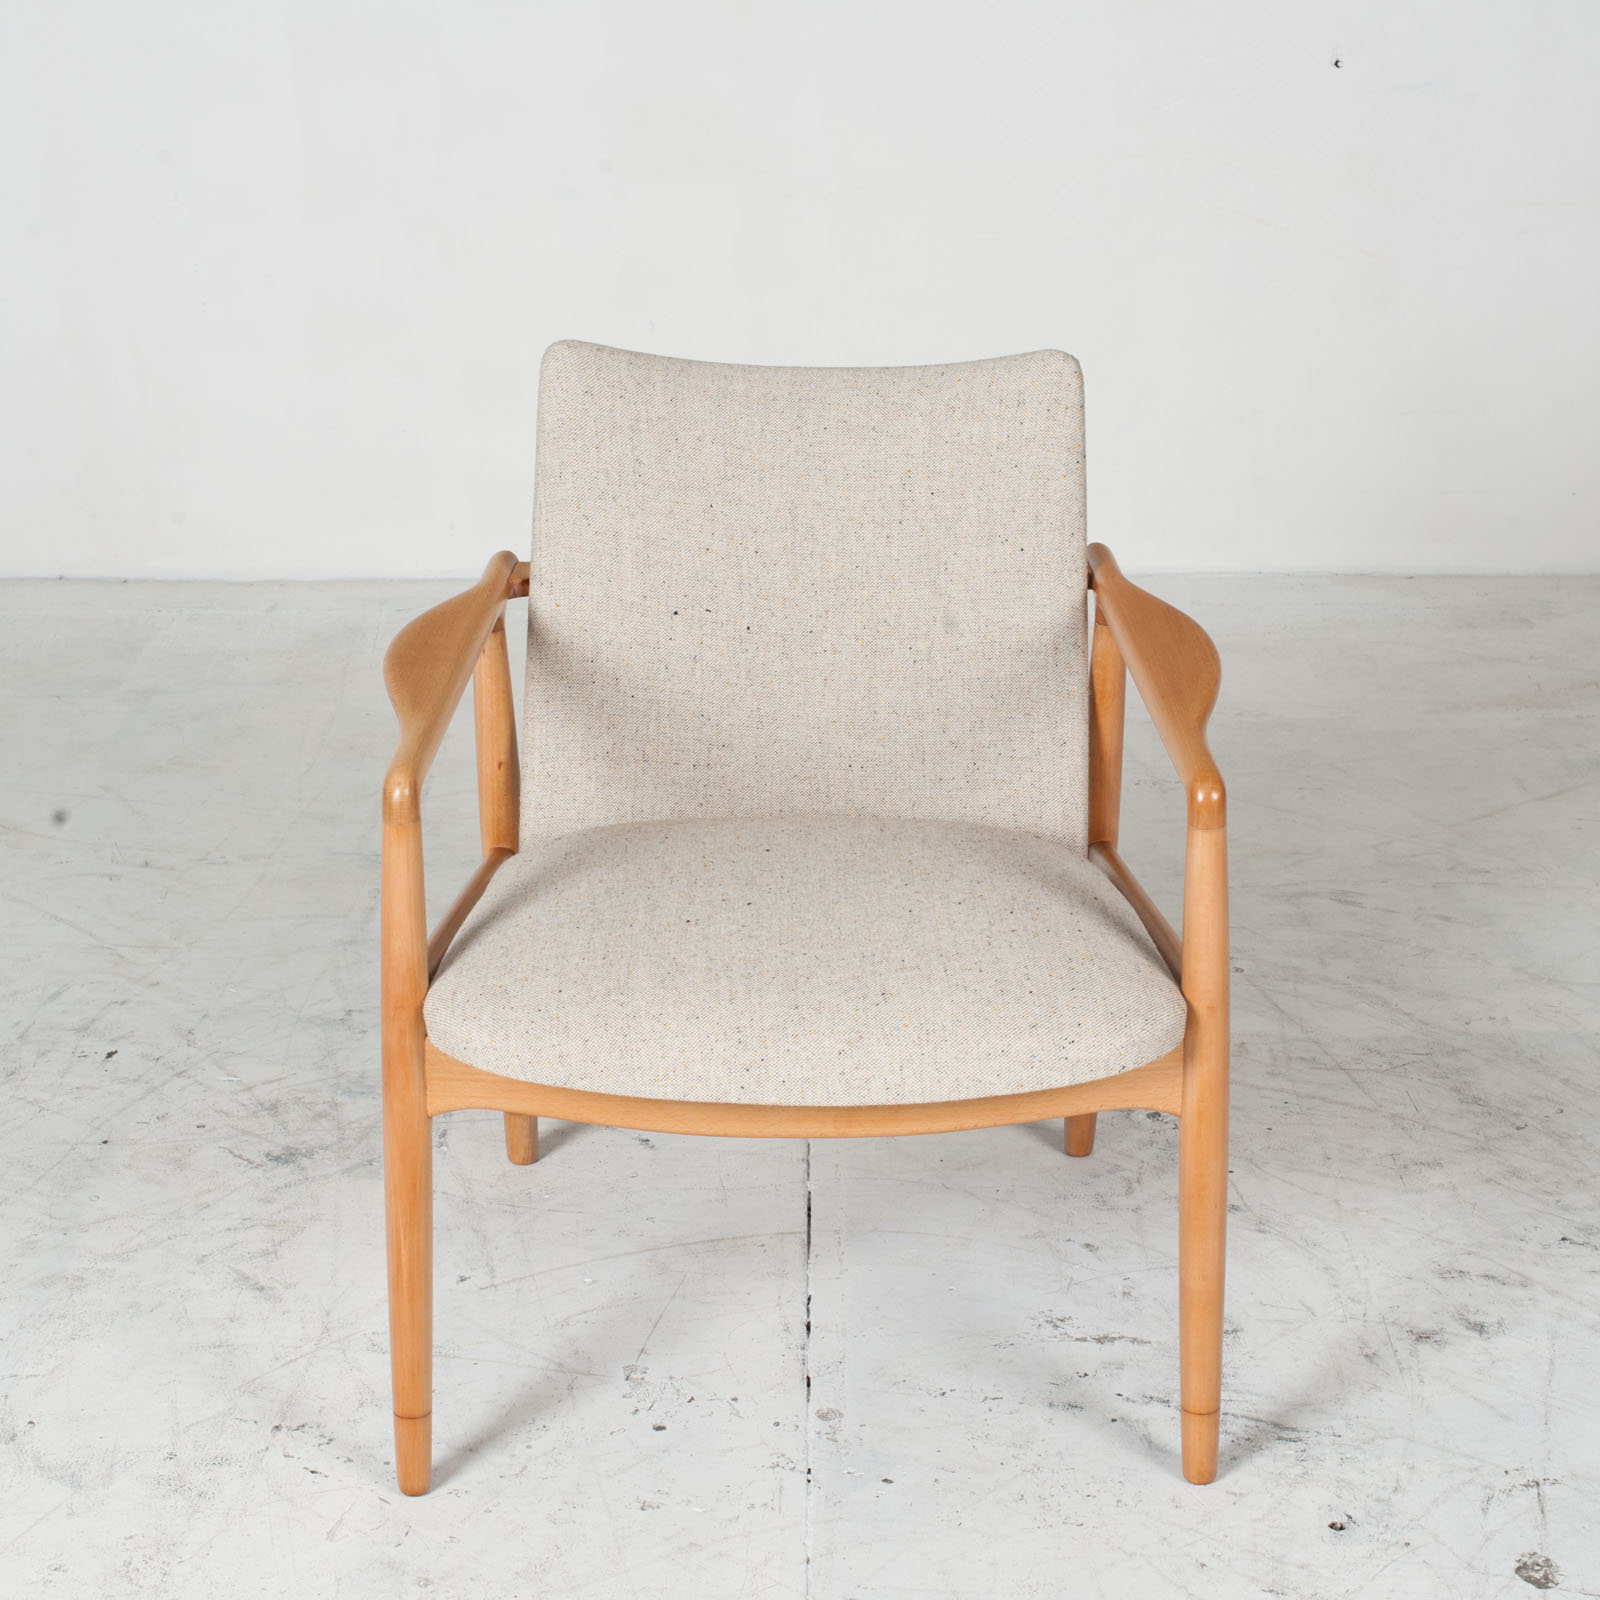 Armchairs In Beech Frame And Light Oatmeal Upholstery 1960s Denmark 02